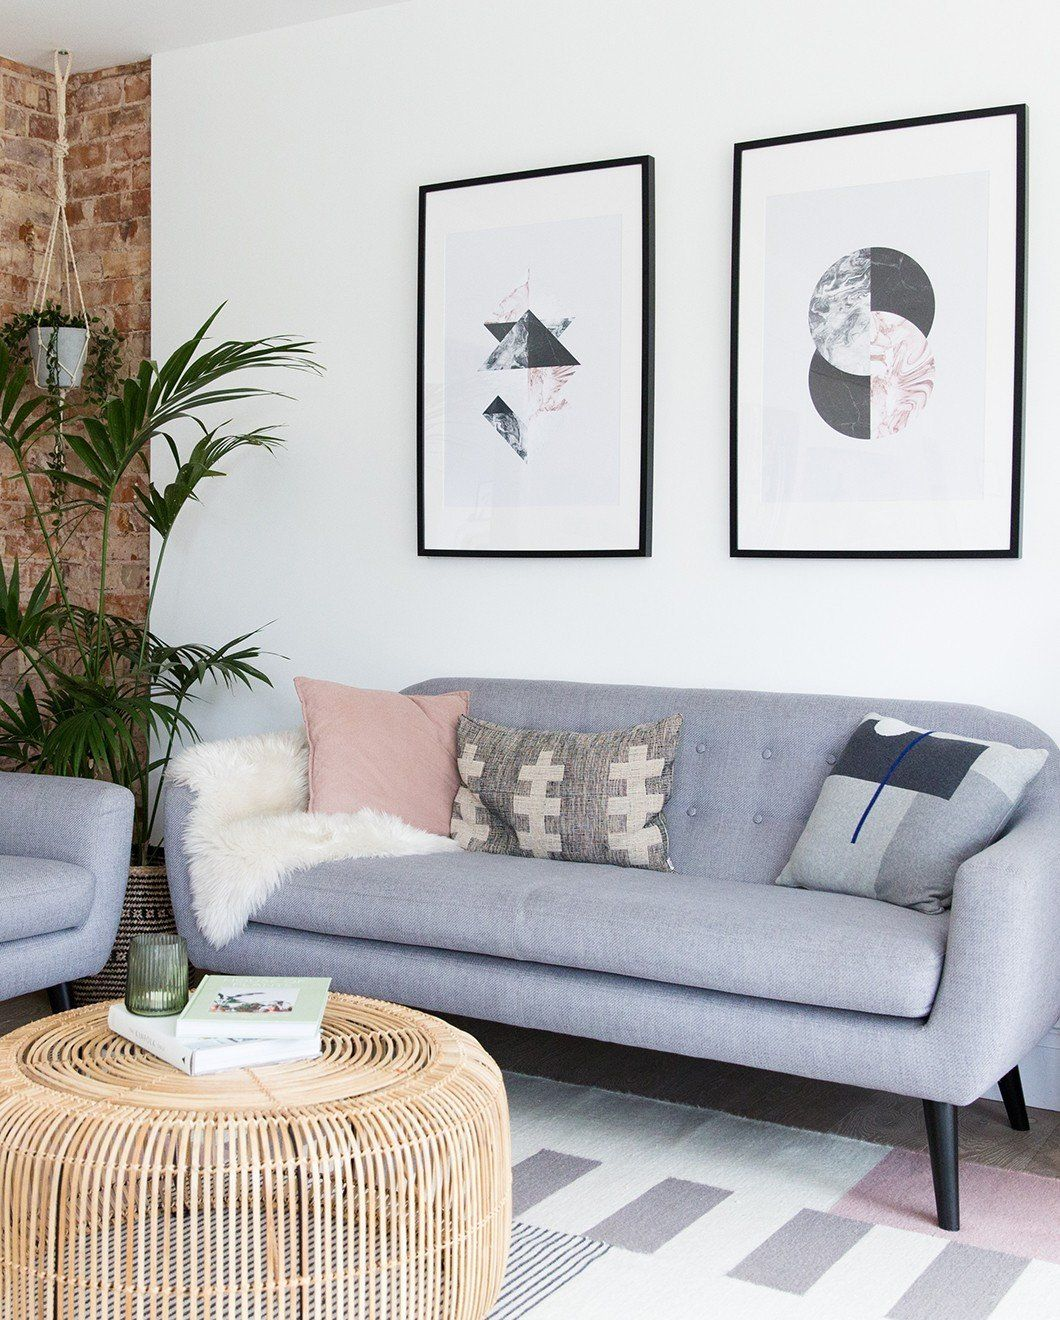 Big Couch Small Living Room How To Choose A Sofa For Your Space In 2020 Small Living Room Layout Living Room Setup Small Living Room